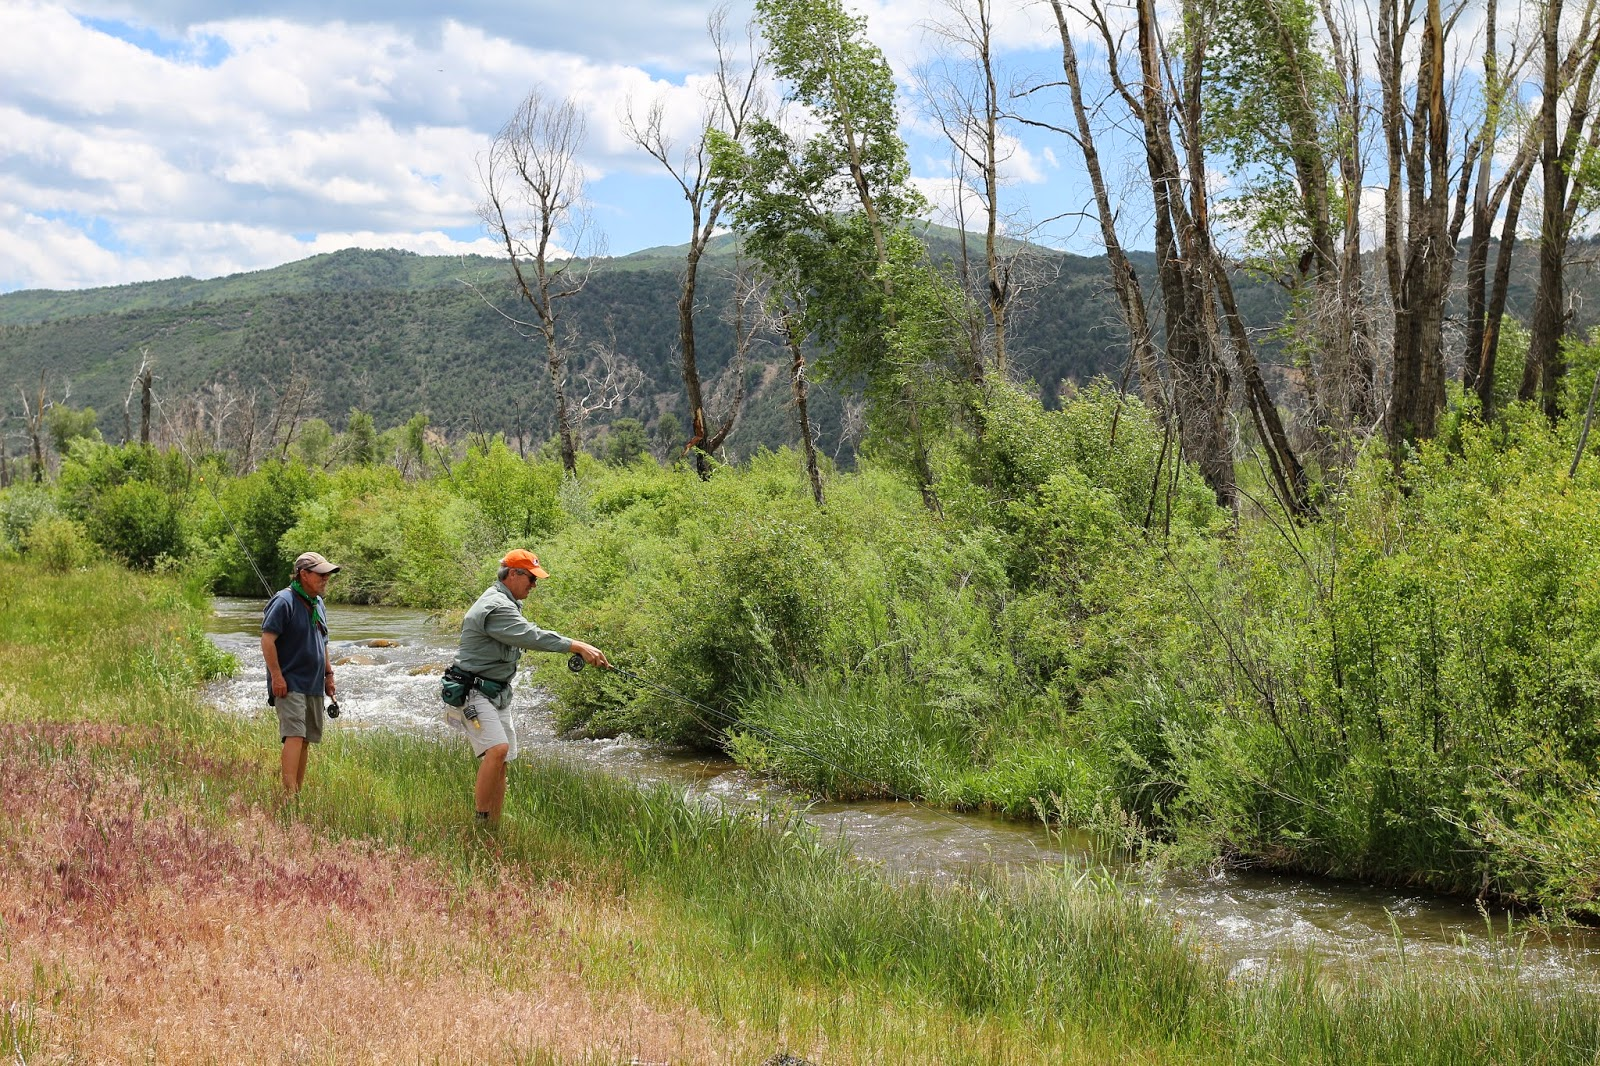 Fly+Fish+for+brown+trout+in+Colorado+with+Jay+Scott+Outdoors+12.JPG